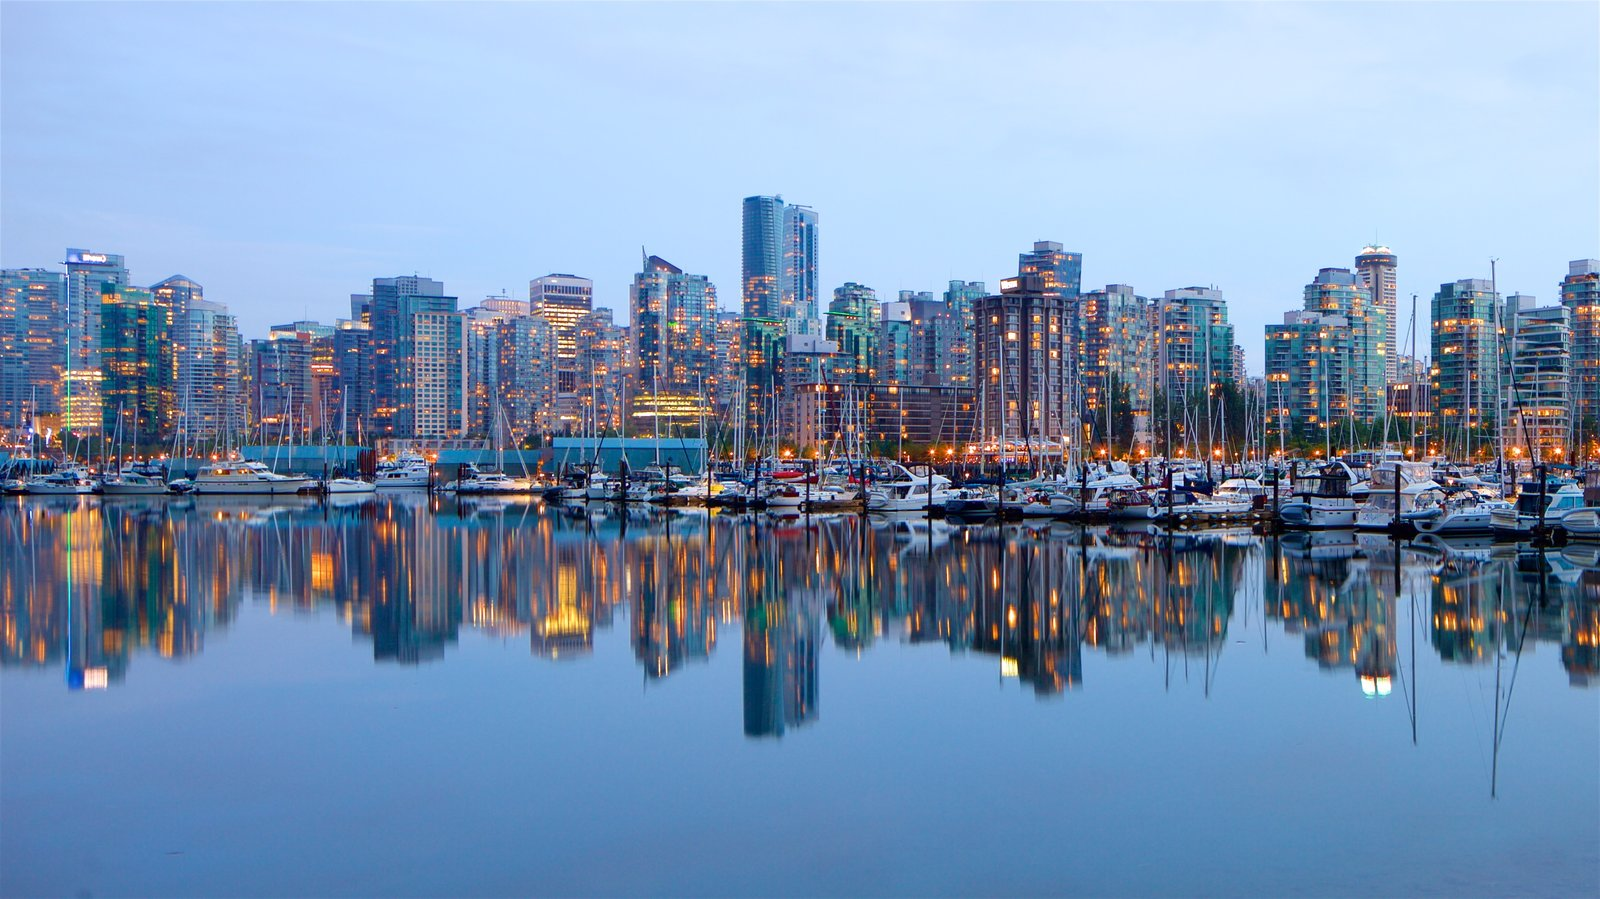 Stanley Park which includes a city, a bay or harbor and a high rise building